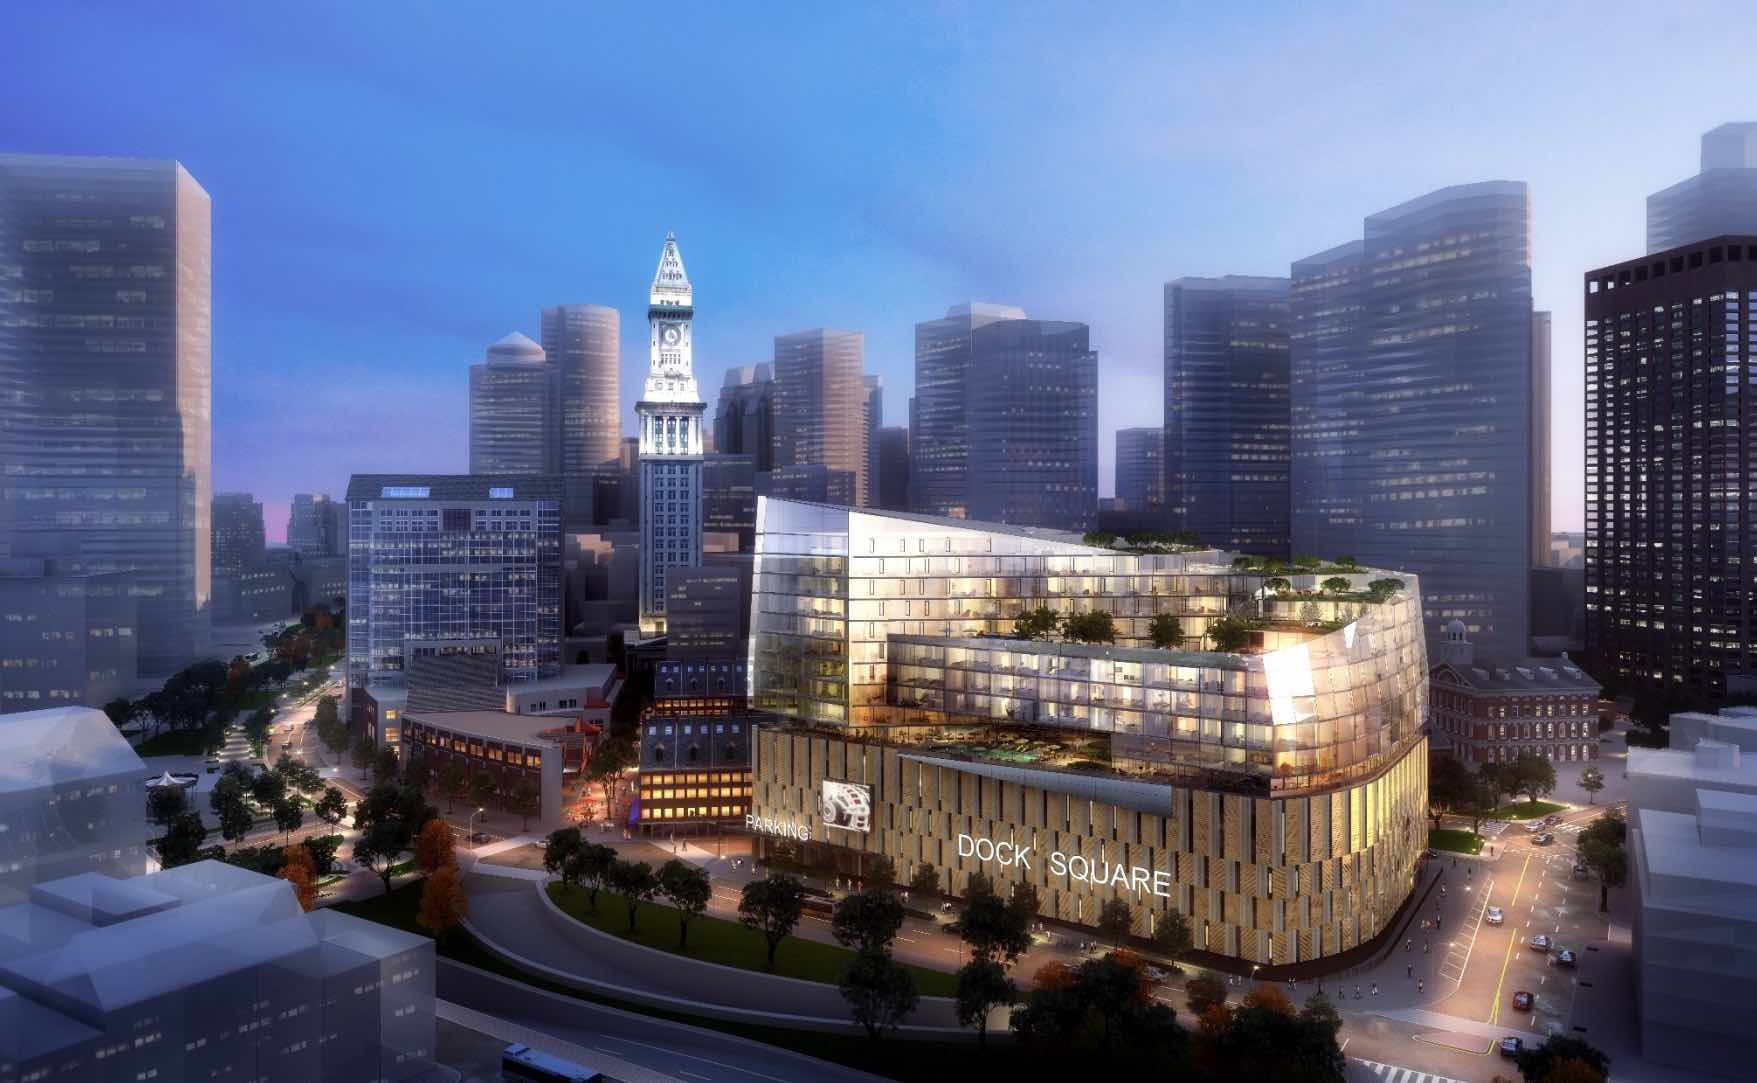 Dock Square Parking Garage Real Estate Development Site For Sale Bulfinch  Triangle Boston ...